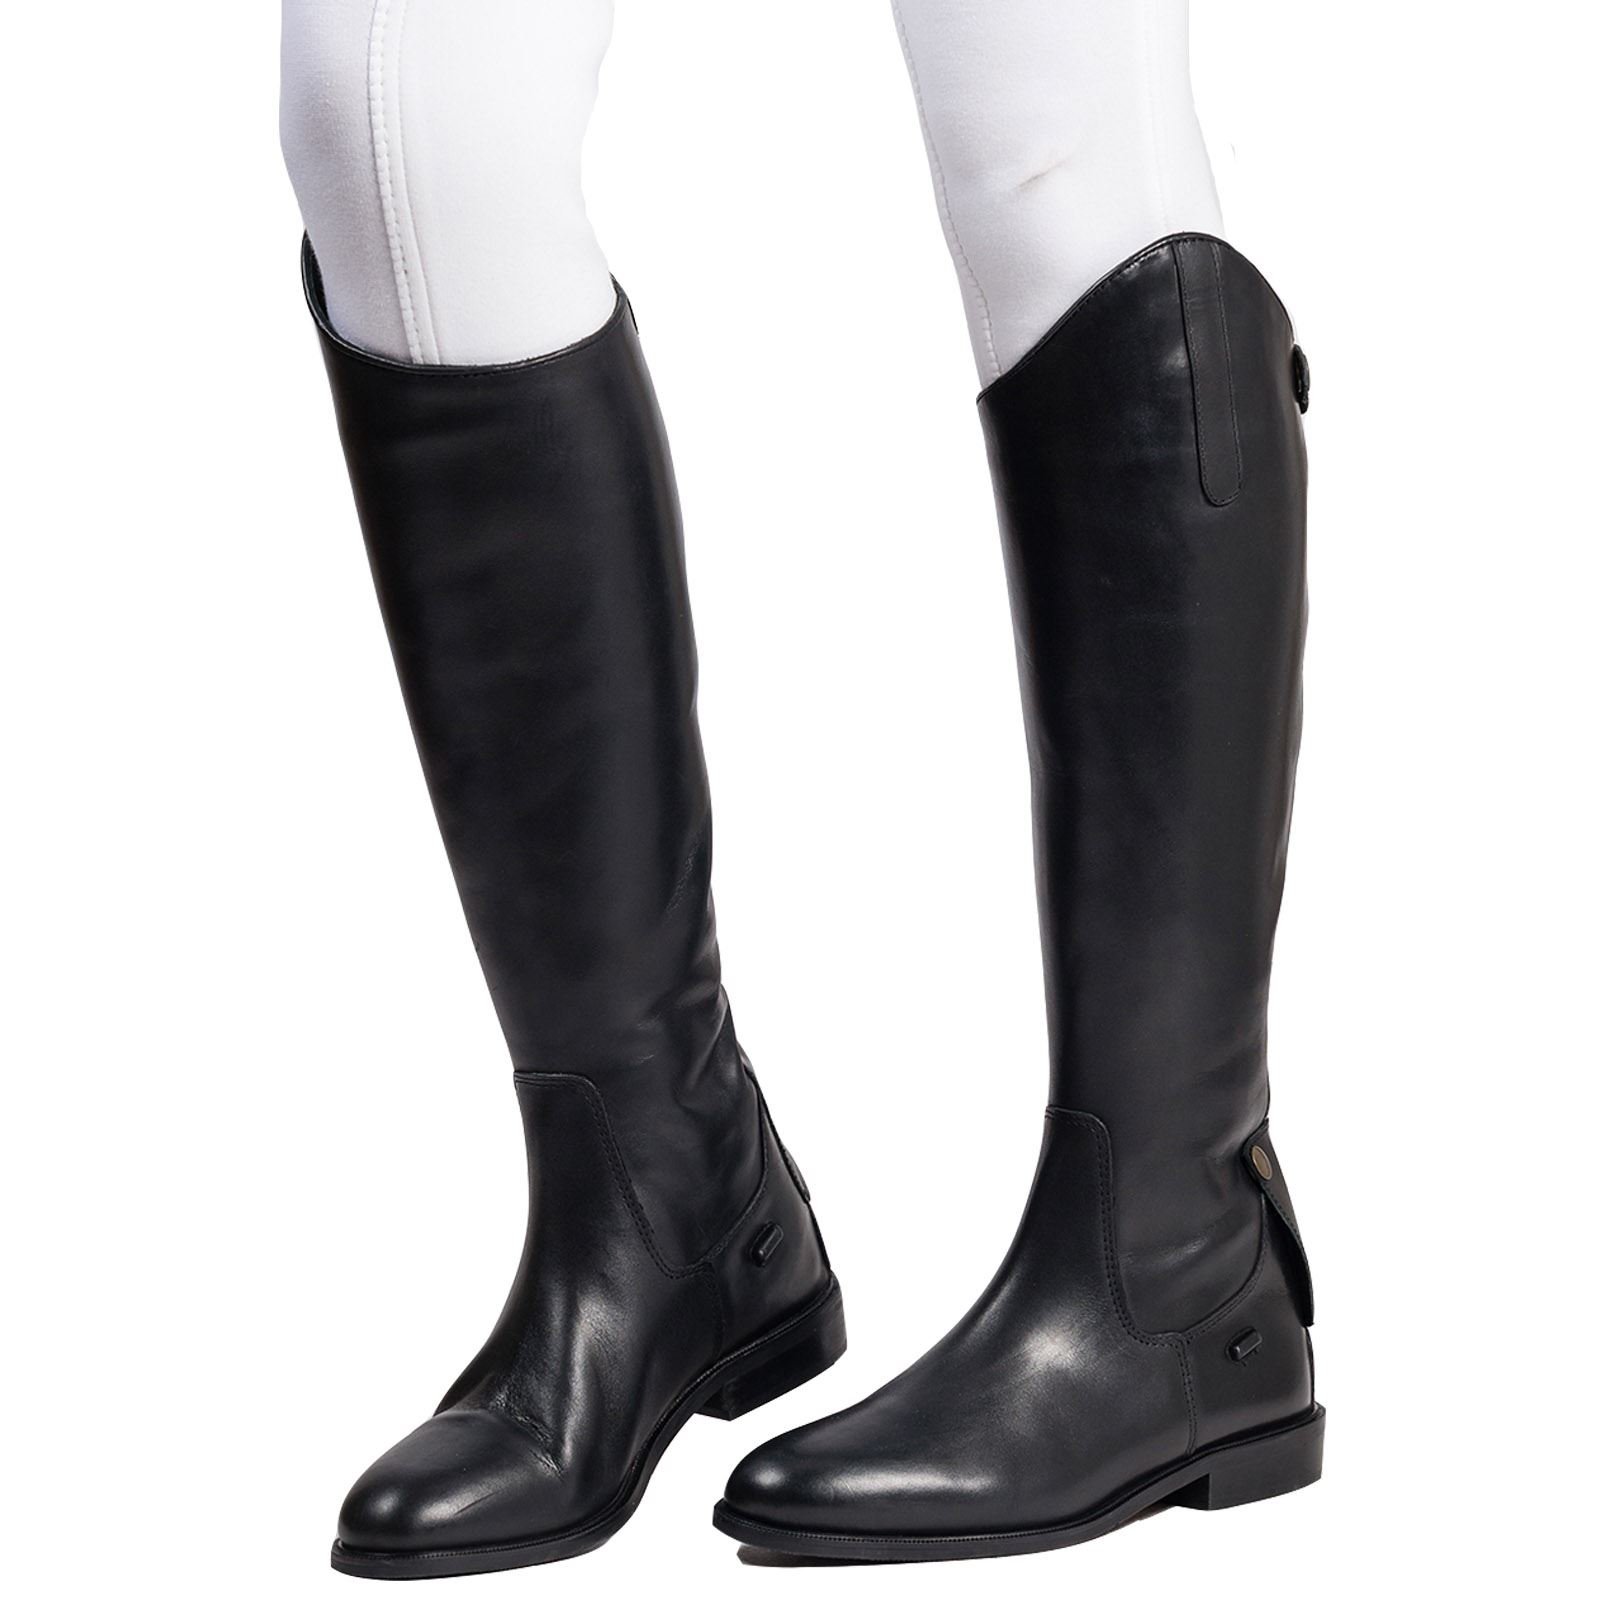 b a belmont boots ladies tall horse riding competition equestrian